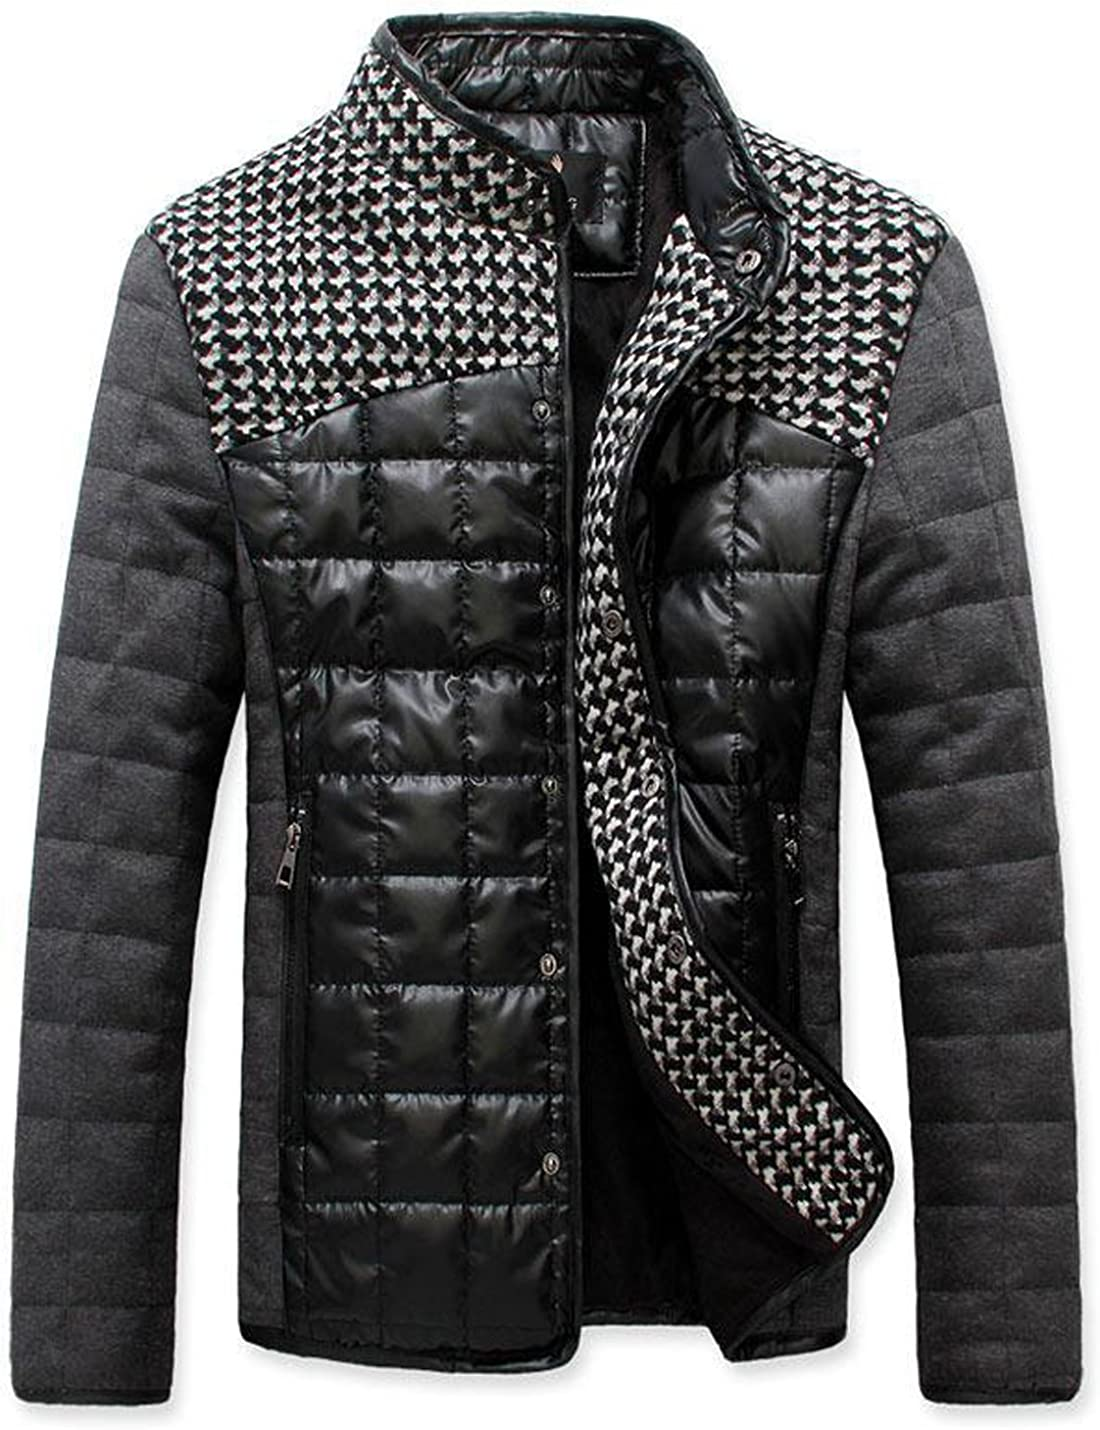 Springrain Men's Winter Houndstooth Buttons Color Block Quilted Padded PU Jackets